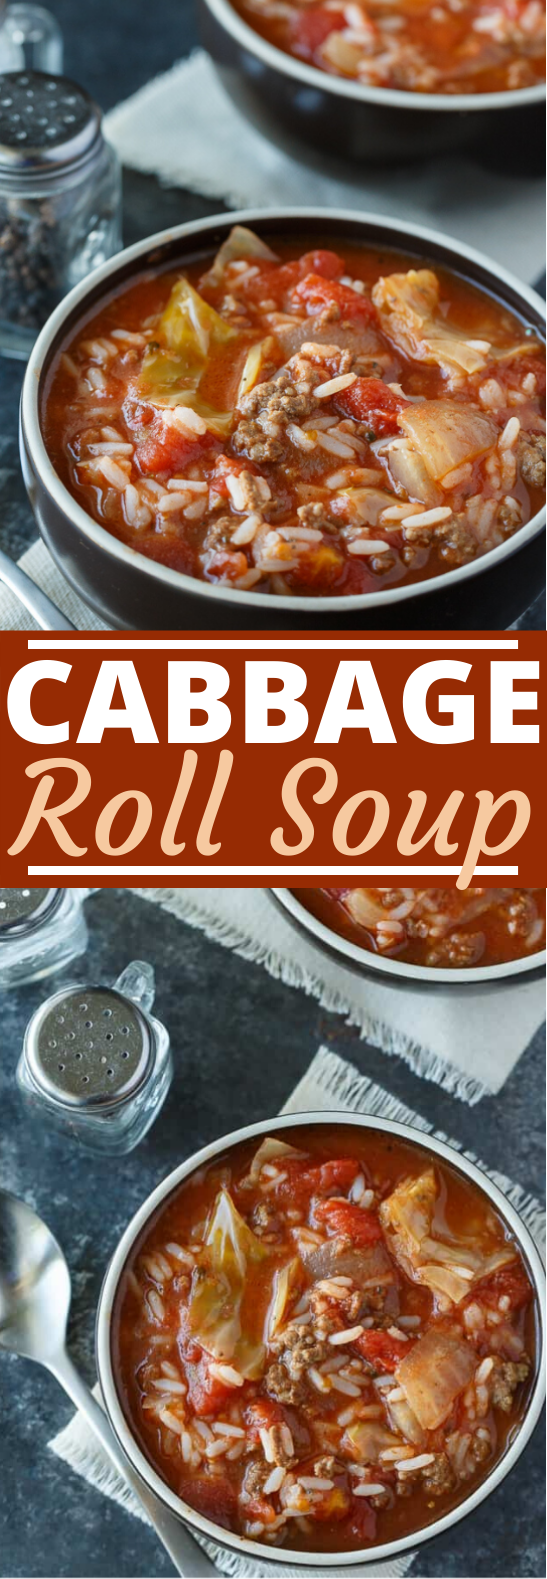 Cabbage Roll Soup #dinner #soup #recipes #comfortfood #healthy